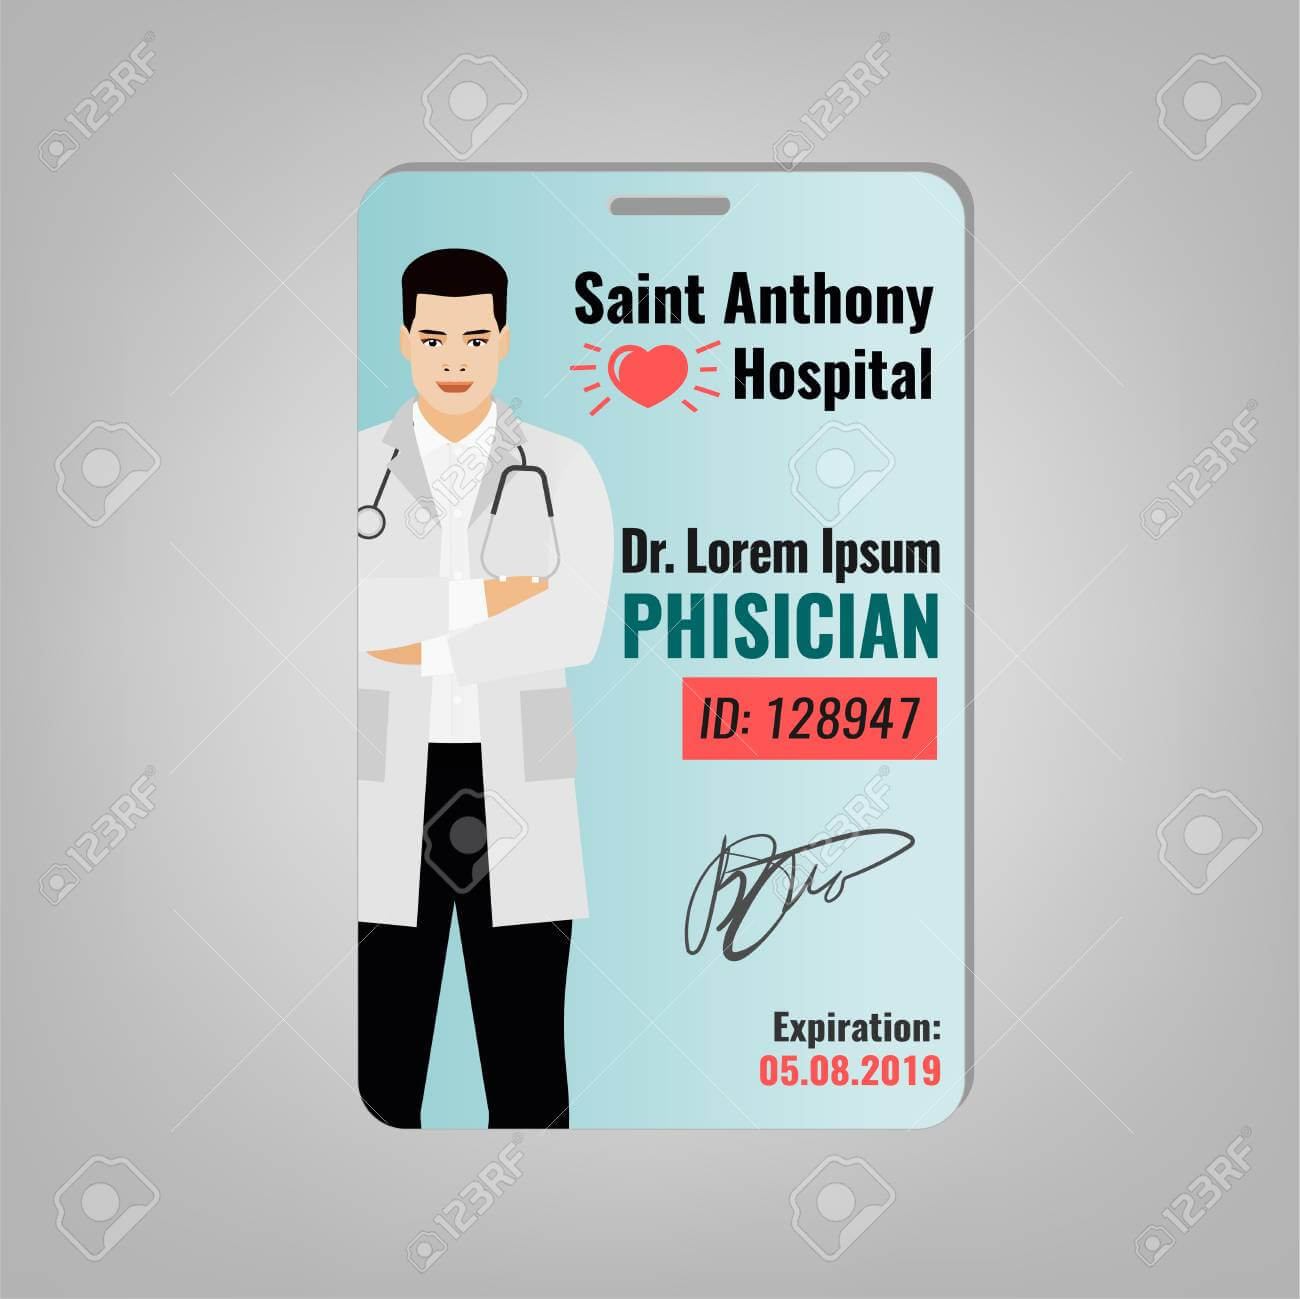 Doctors Id Card With Hospital Logo And Phisician Image. Medical.. within Hospital Id Card Template